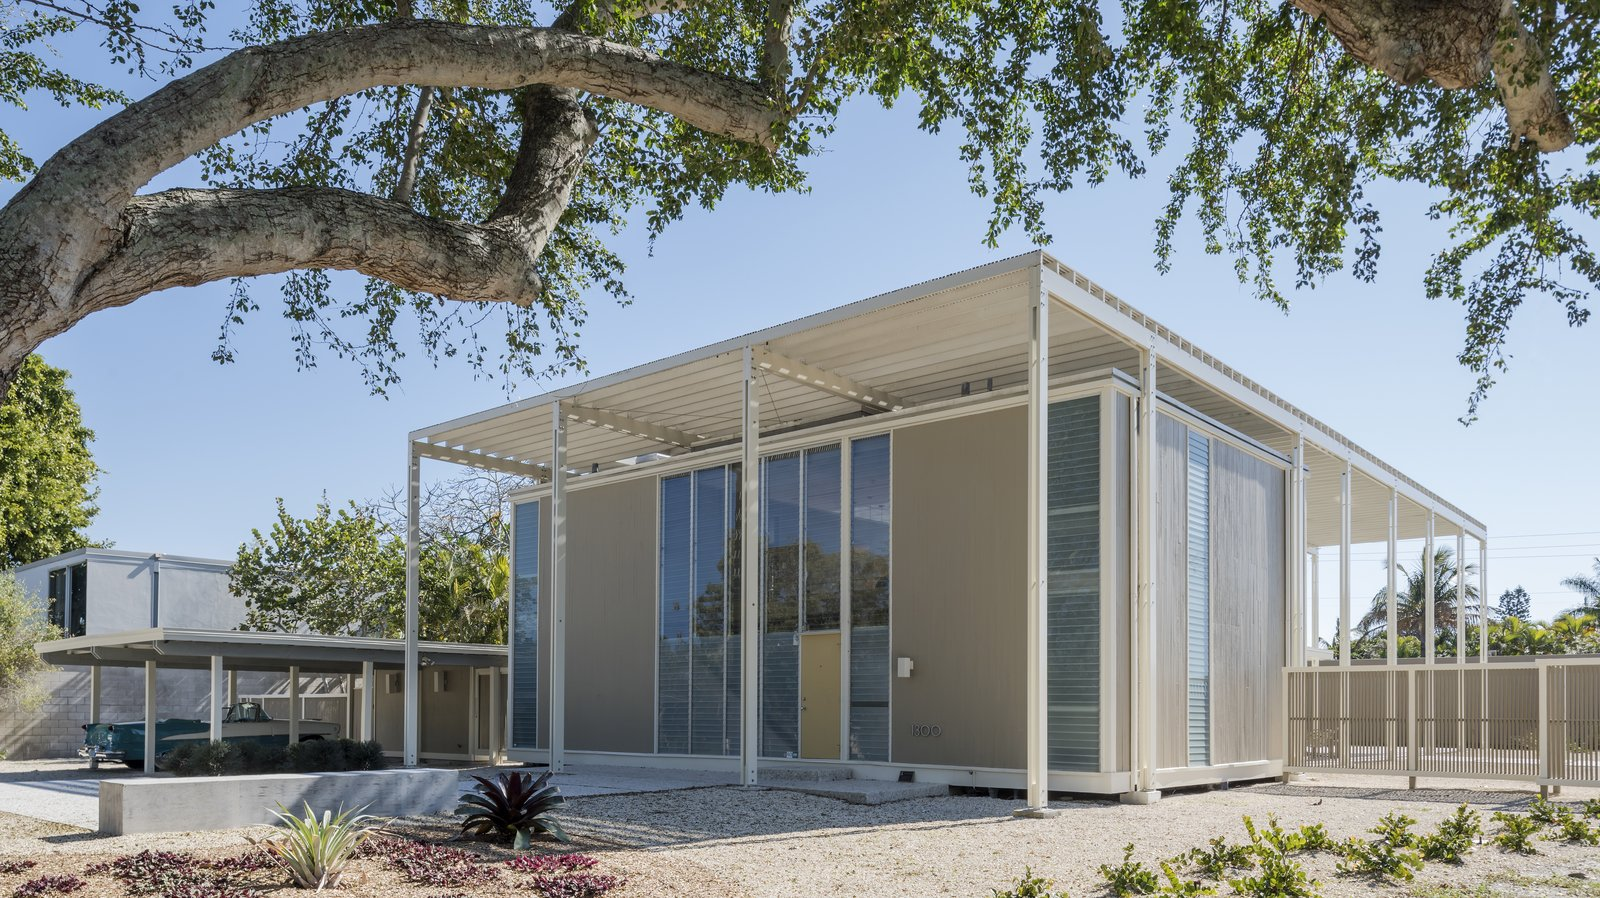 Umbrella house modern home in sarasota florida by paul for Build your own house florida